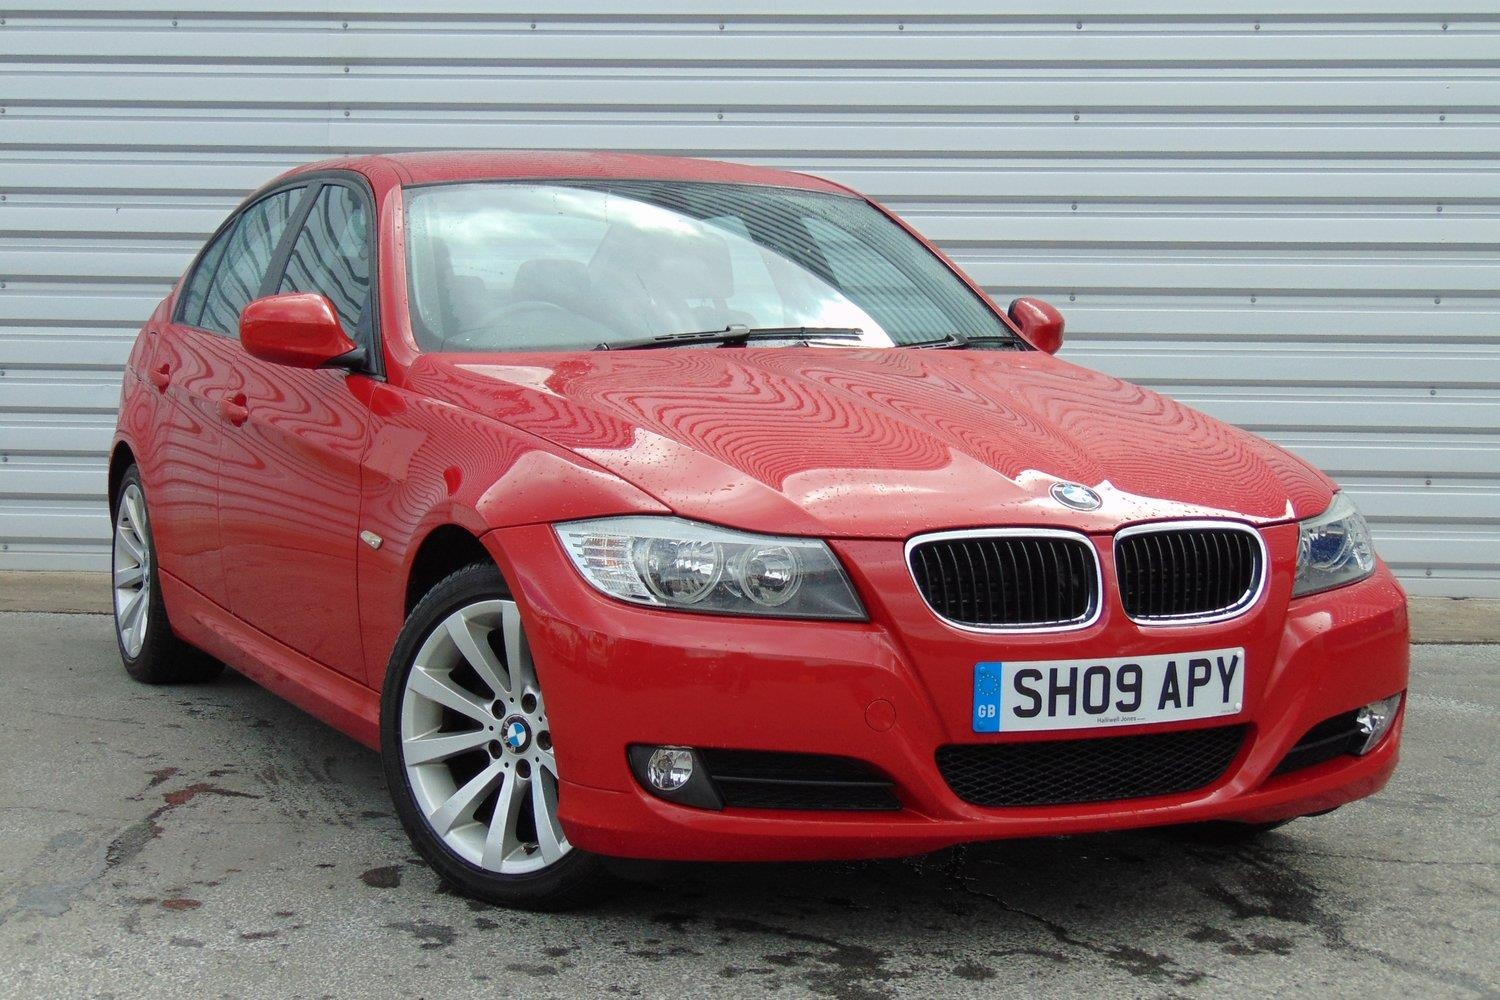 BMW 3 Series Saloon SH09APY - Image 8